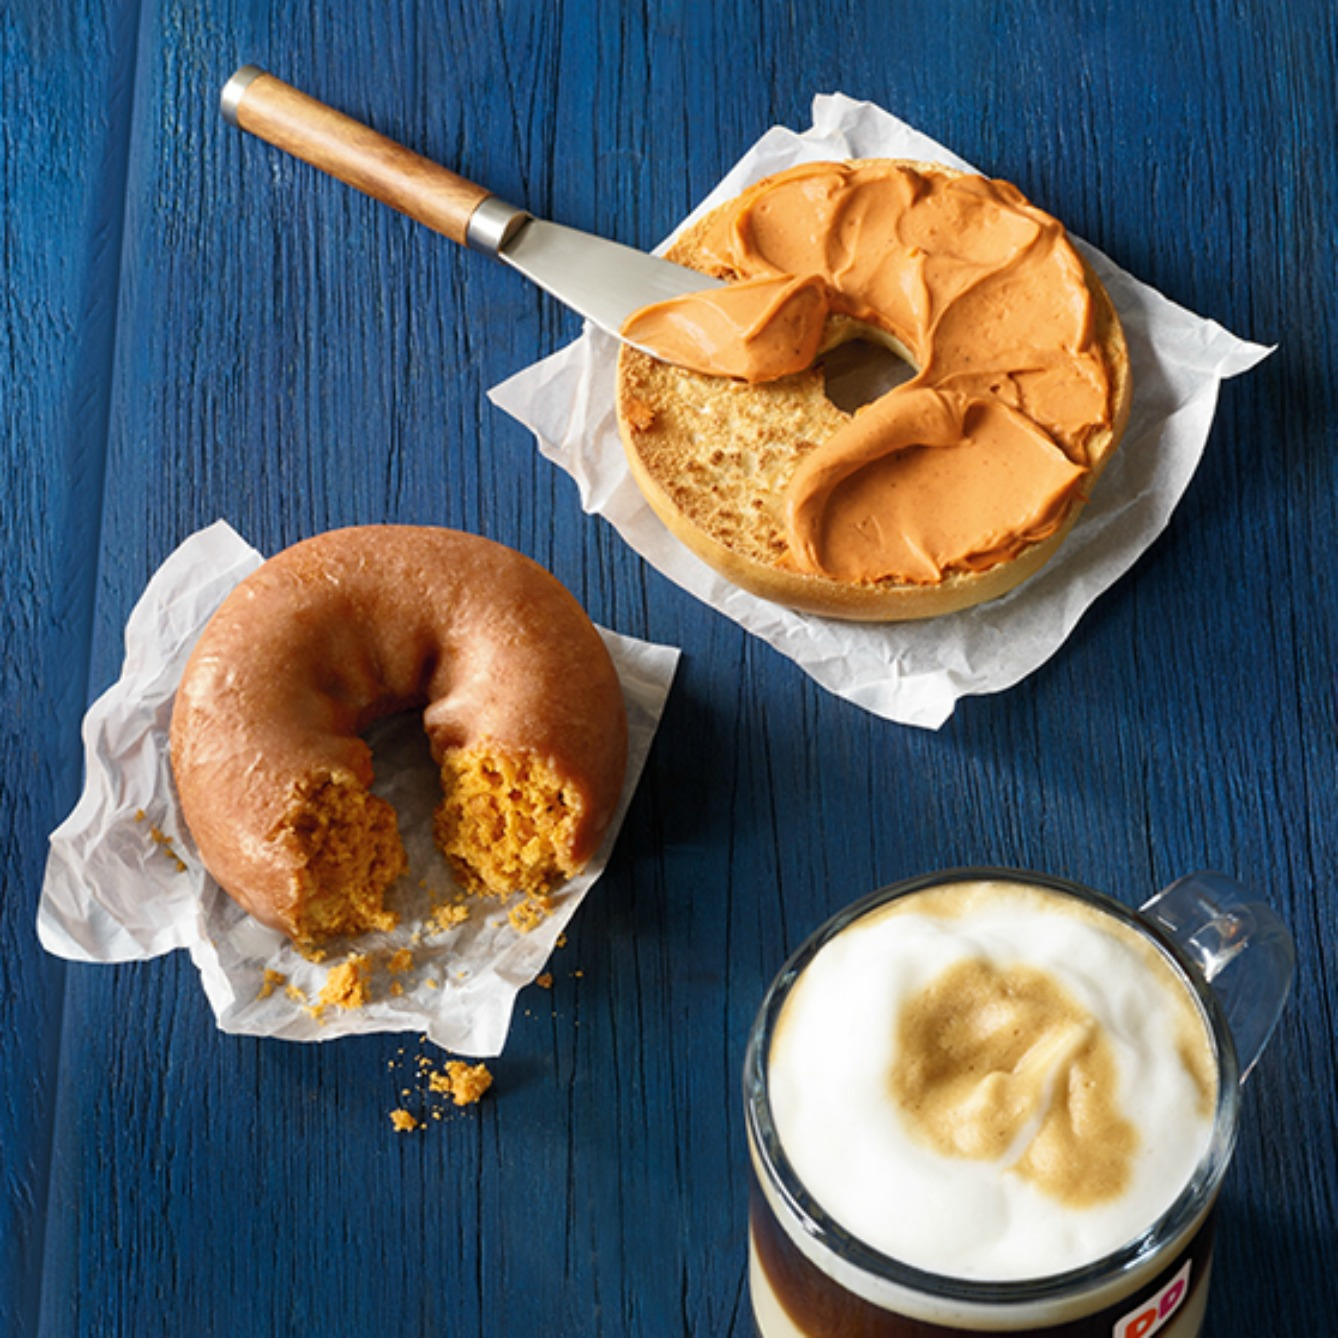 Dunkin' Donuts is Making Sure You Get Your Pumpkin Fix